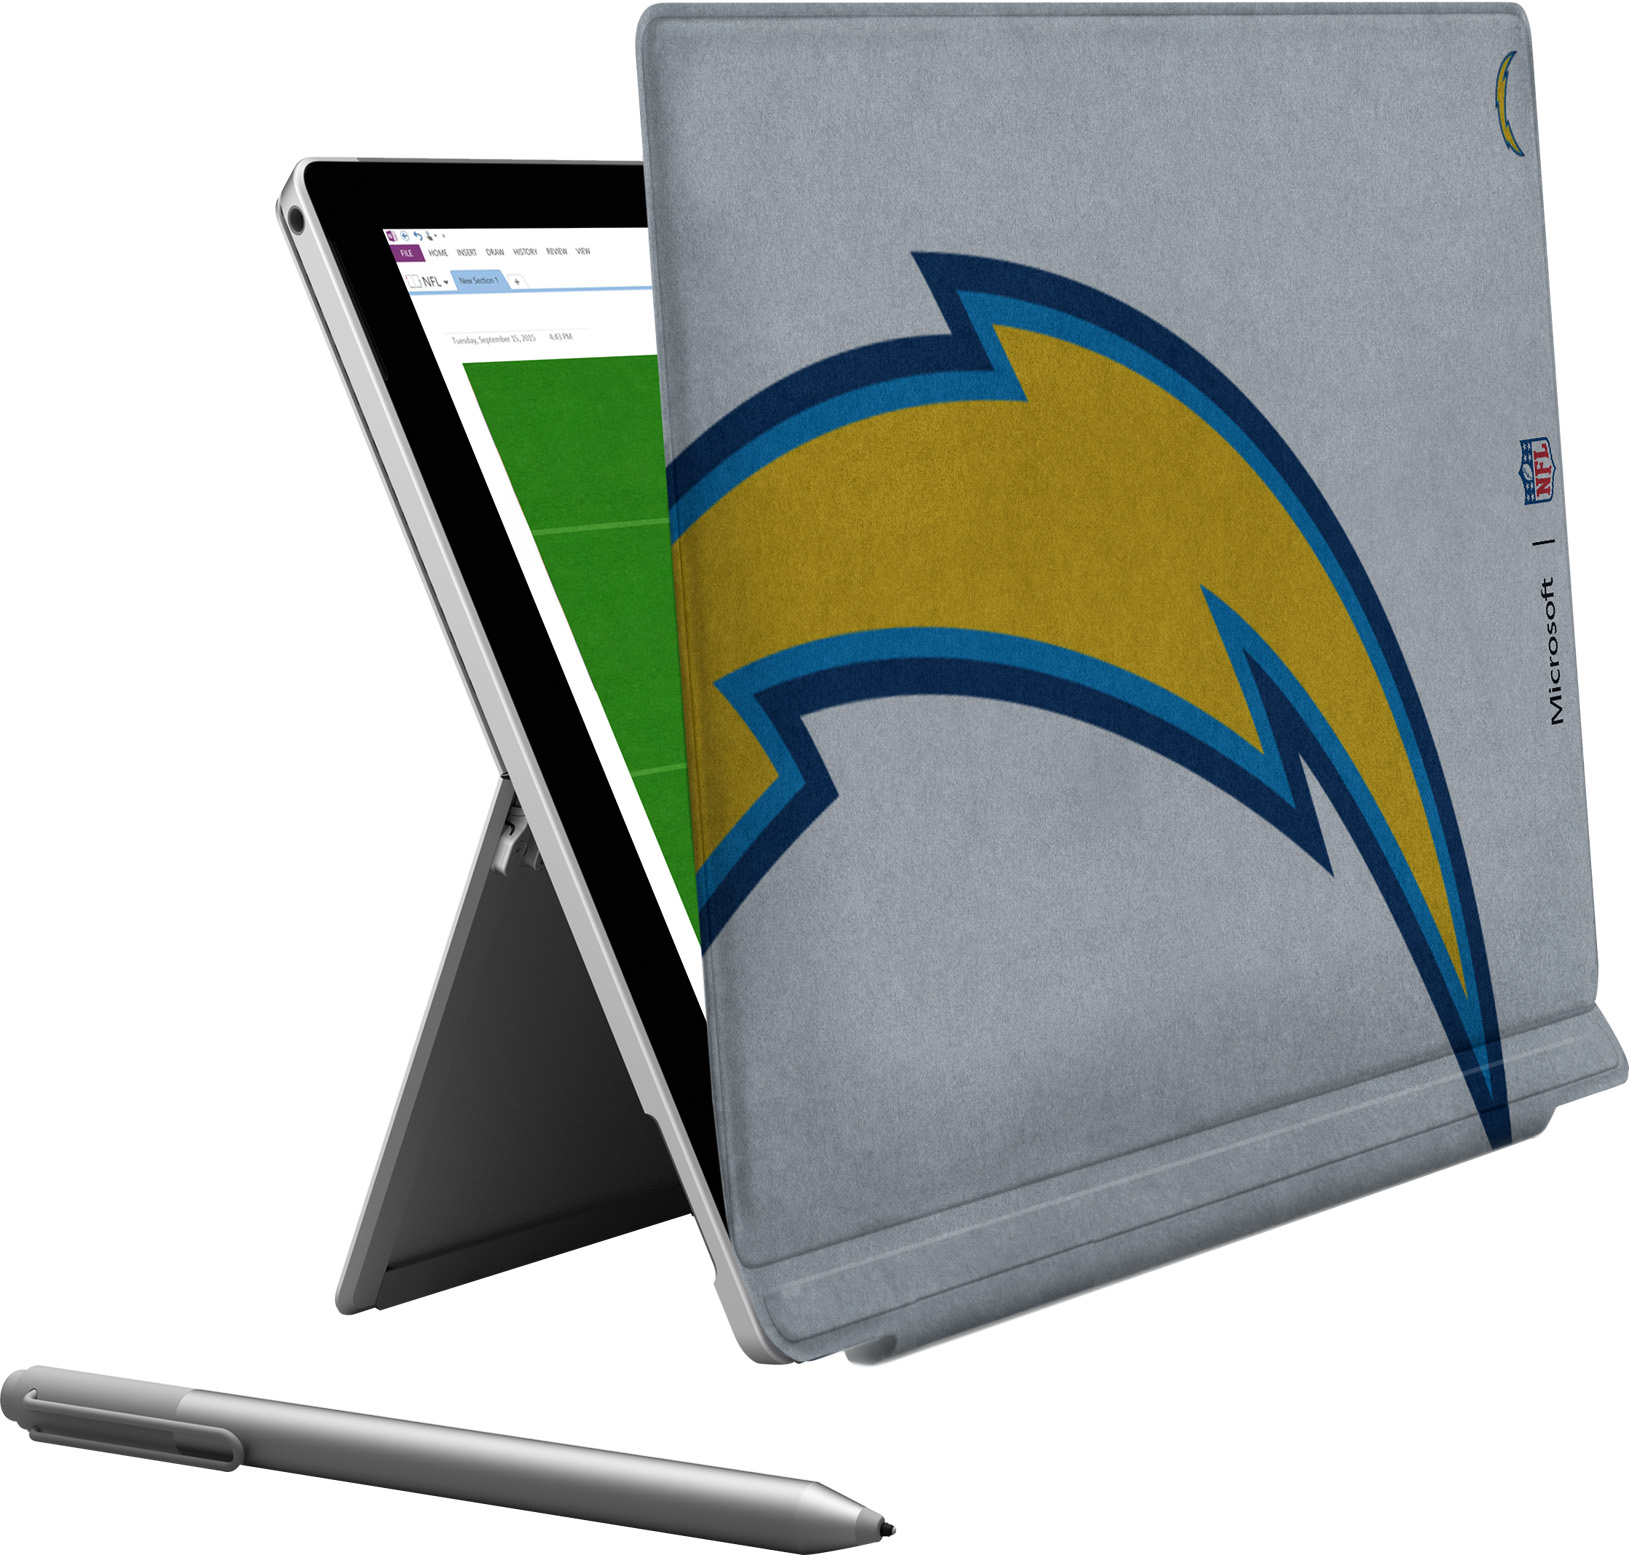 Microsoft Surface Pro 4 San Diego Chargers Type Cover